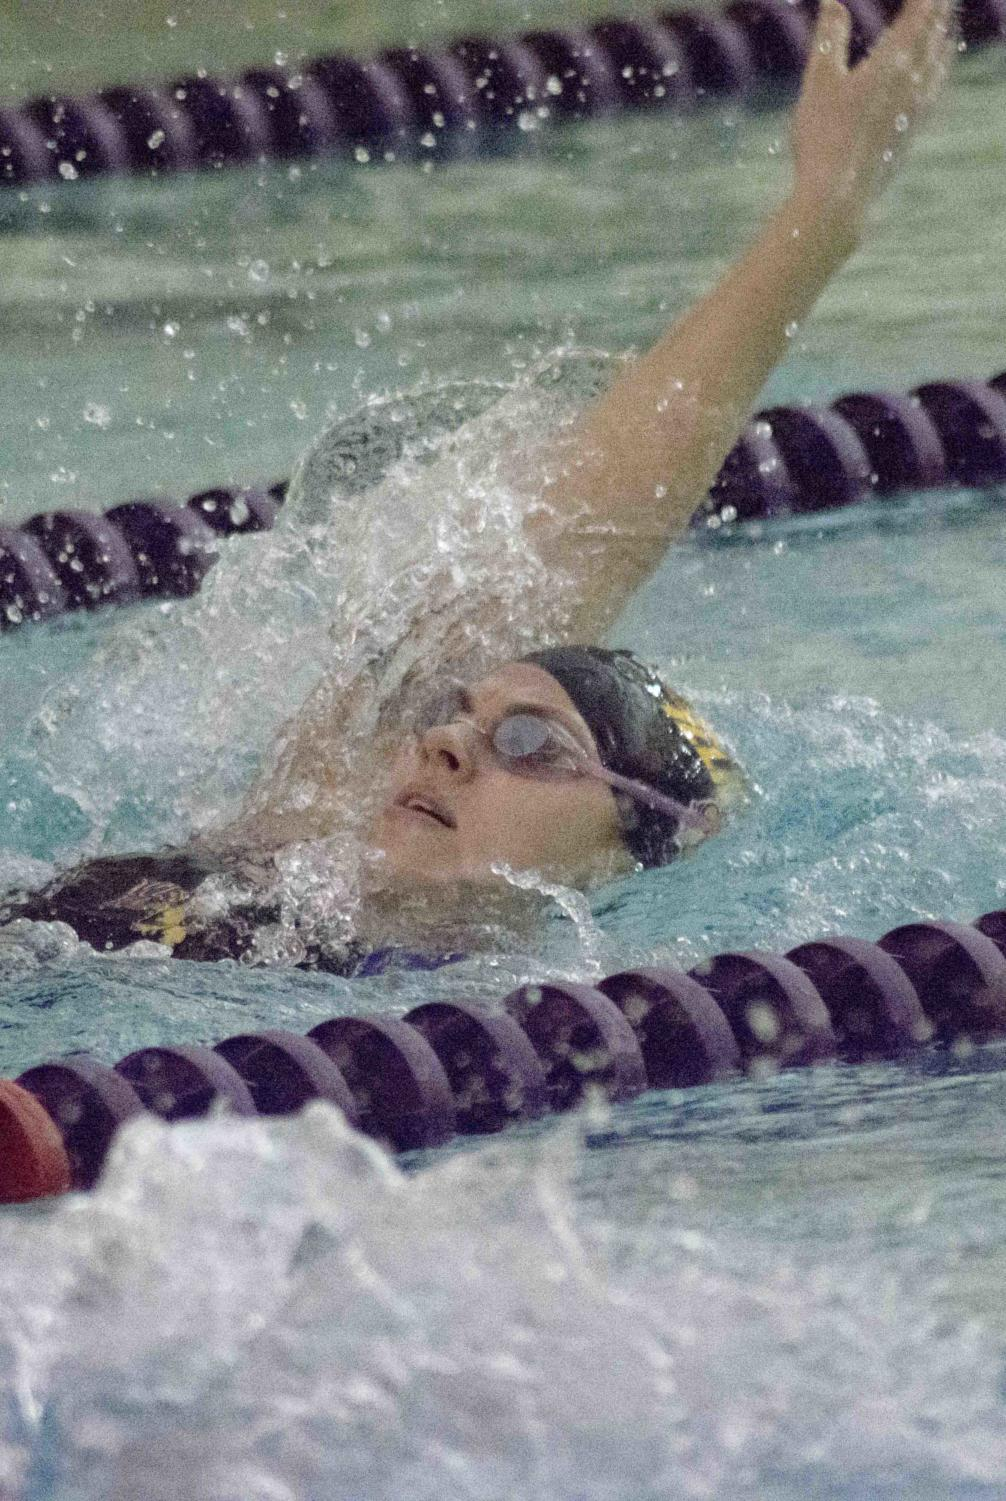 Leatherneck swimmer competes in backstroke event.